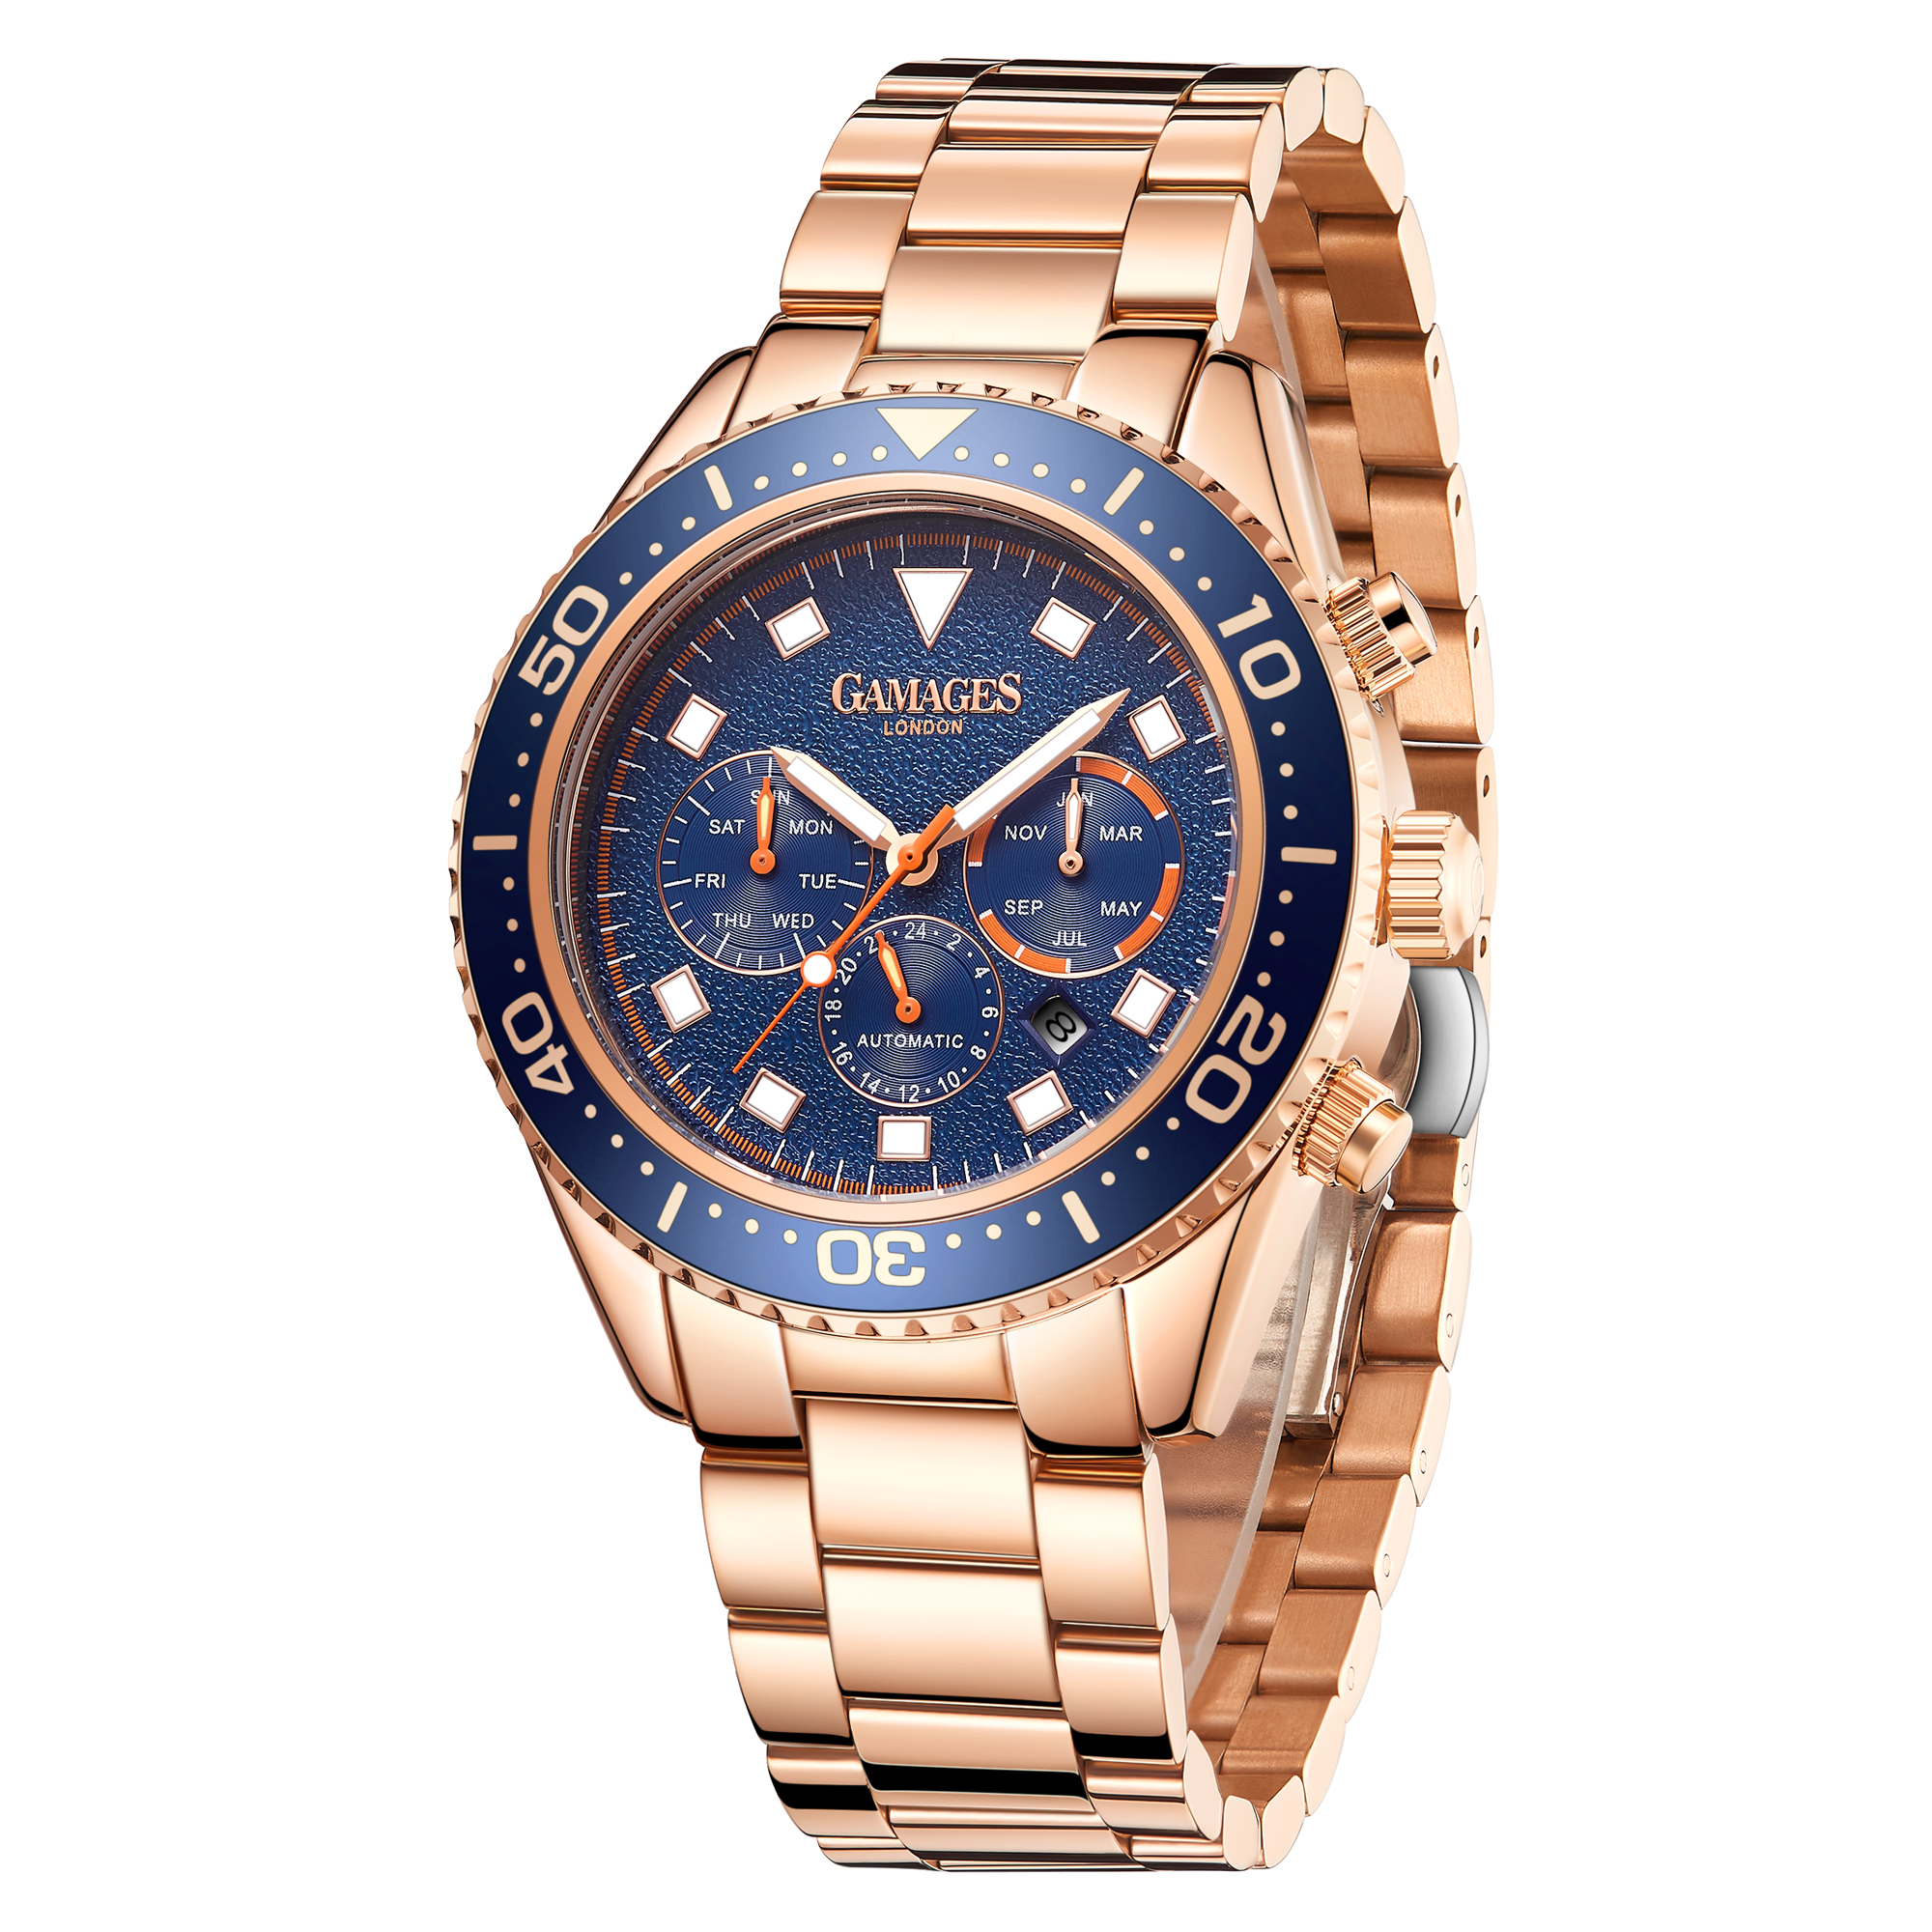 Limited Edition Hand Assembled GAMAGES Allure Automatic Rose – 5 Year Warranty & Free Delivery - Image 4 of 5